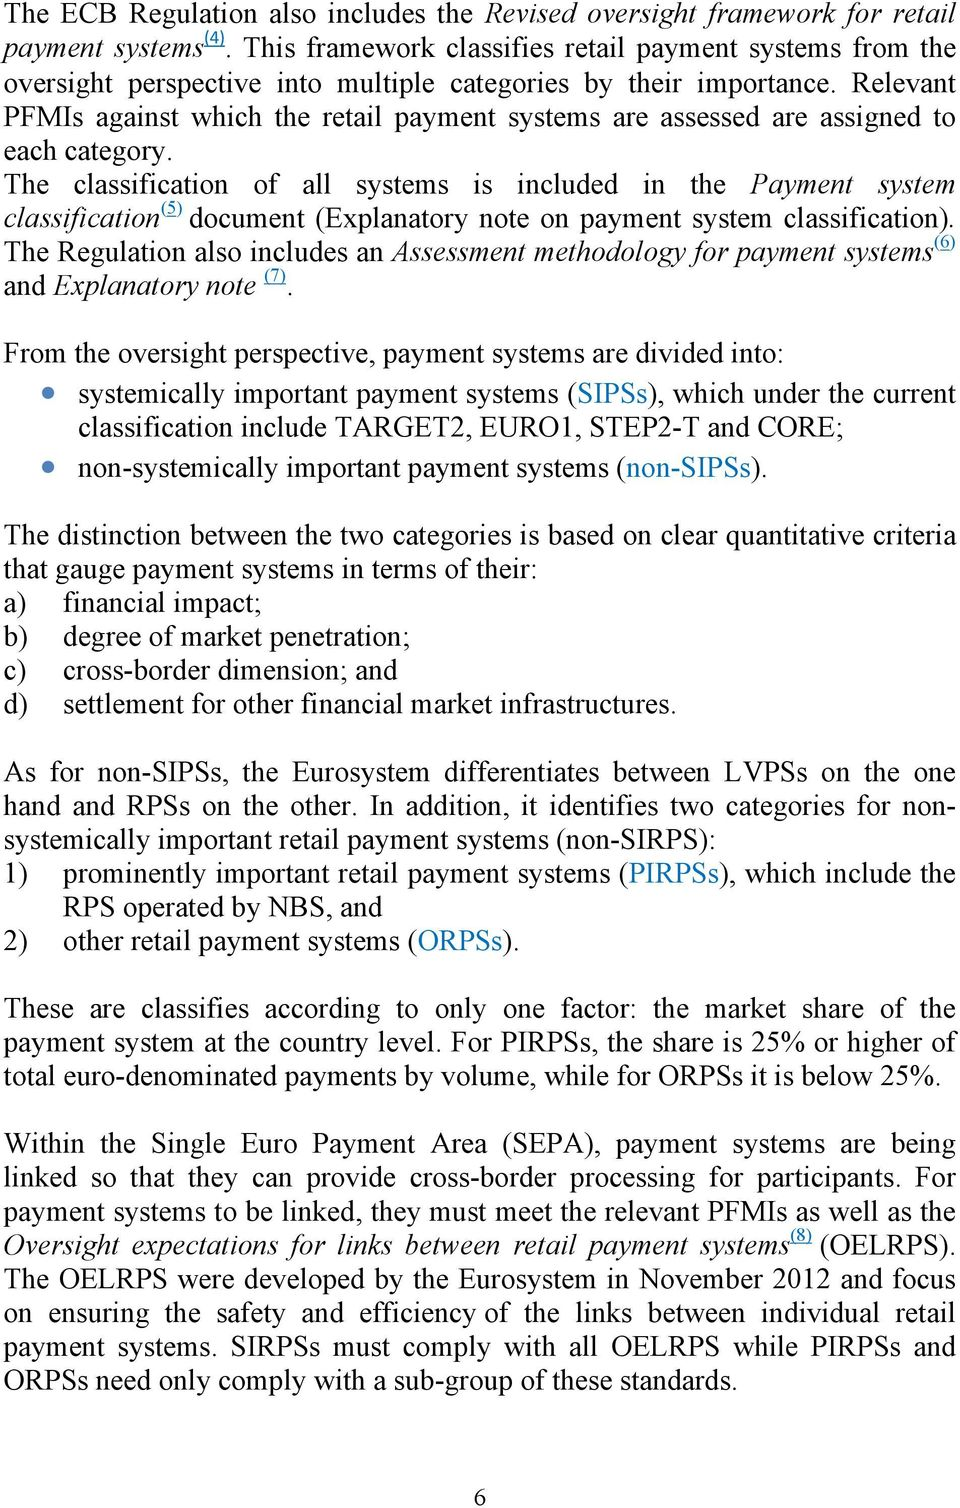 Relevant PFMIs against which the retail payment systems are assessed are assigned to each category.